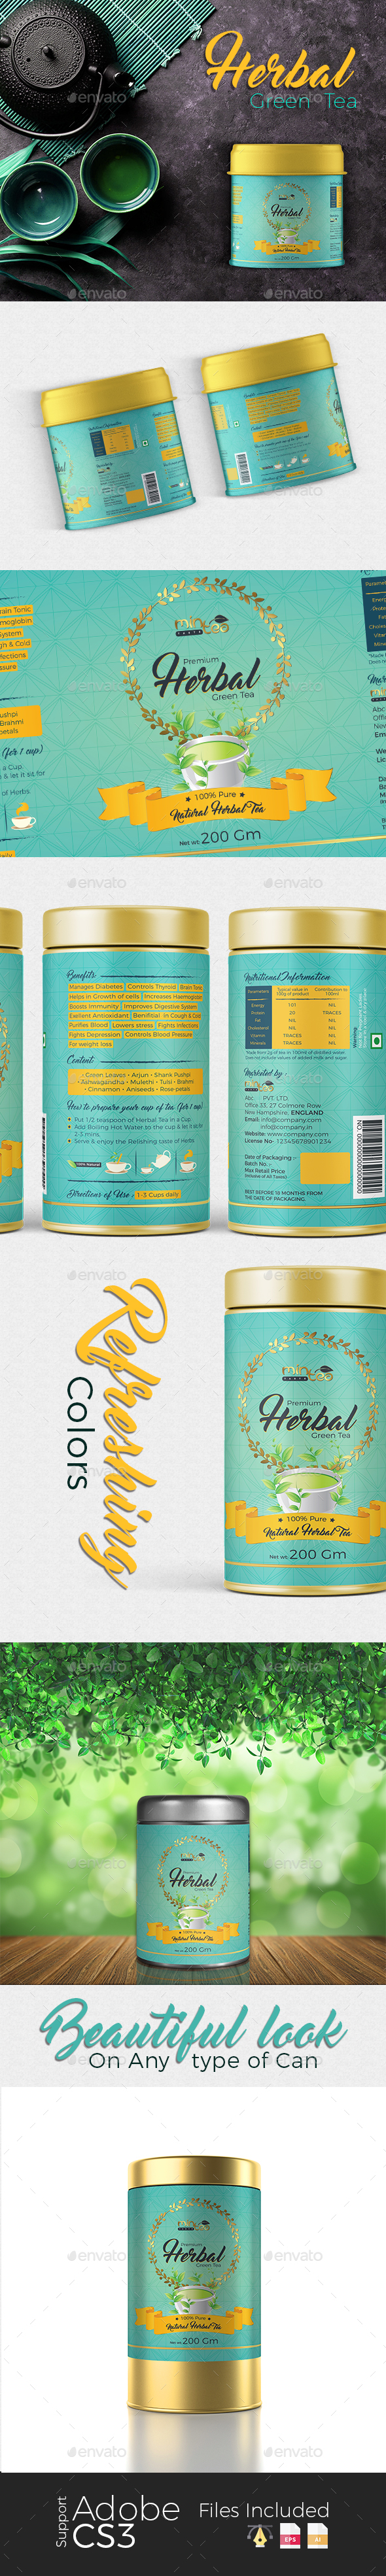 Herbal Green Tea Label - Packaging Print Templates